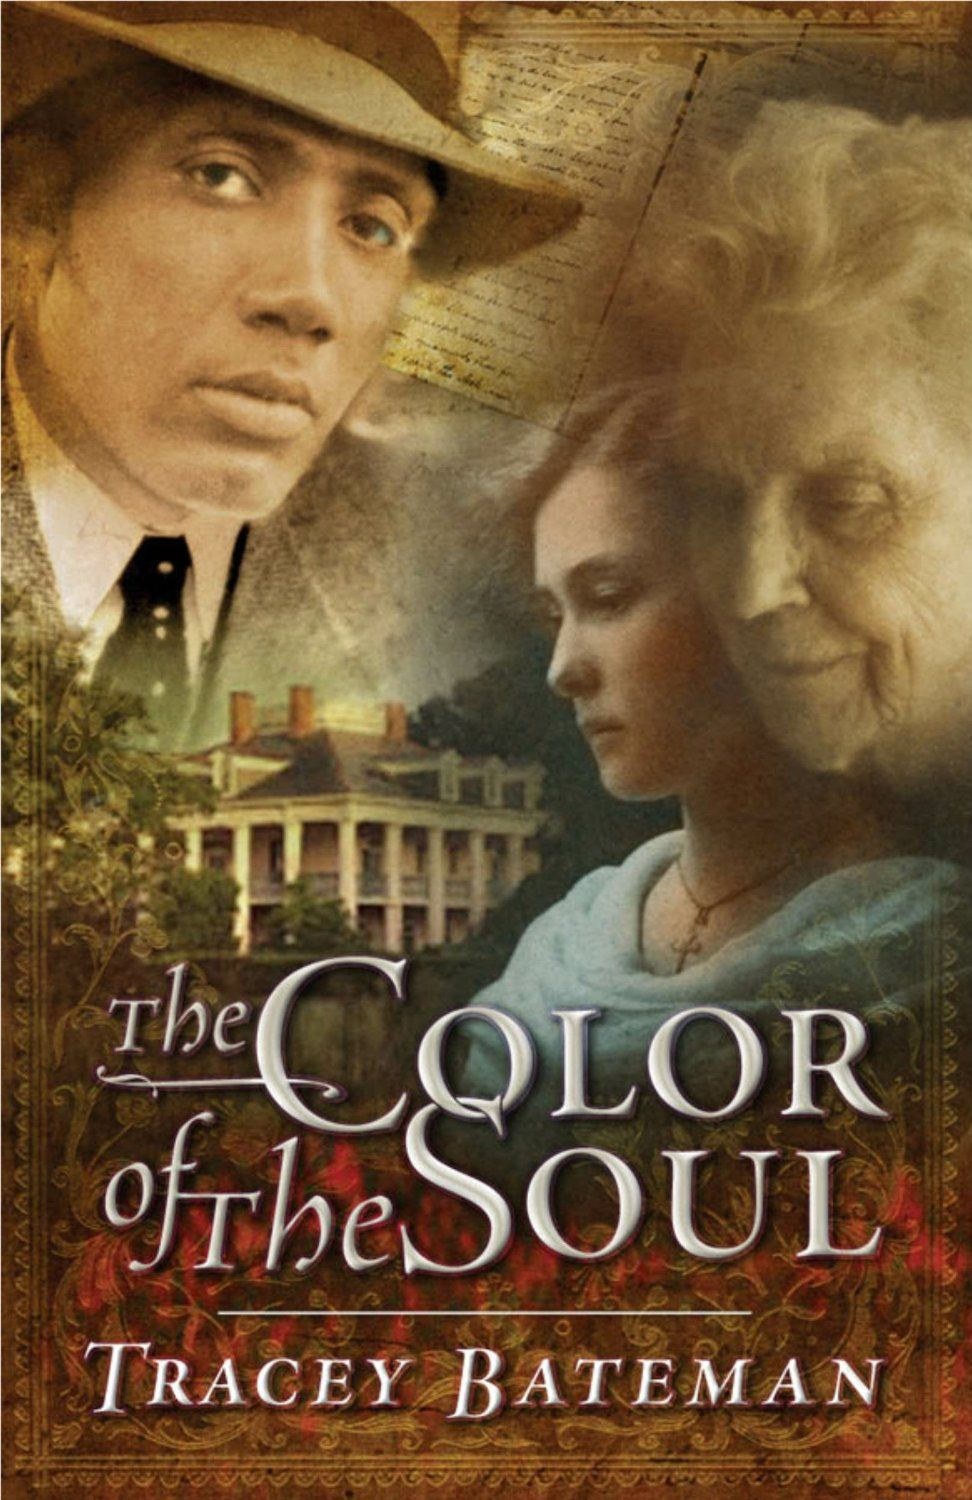 The color of the soul the penbrook diaries by tracey bateman 299 the color of the soul the penbrook diaries by tracey bateman 299 fandeluxe Gallery